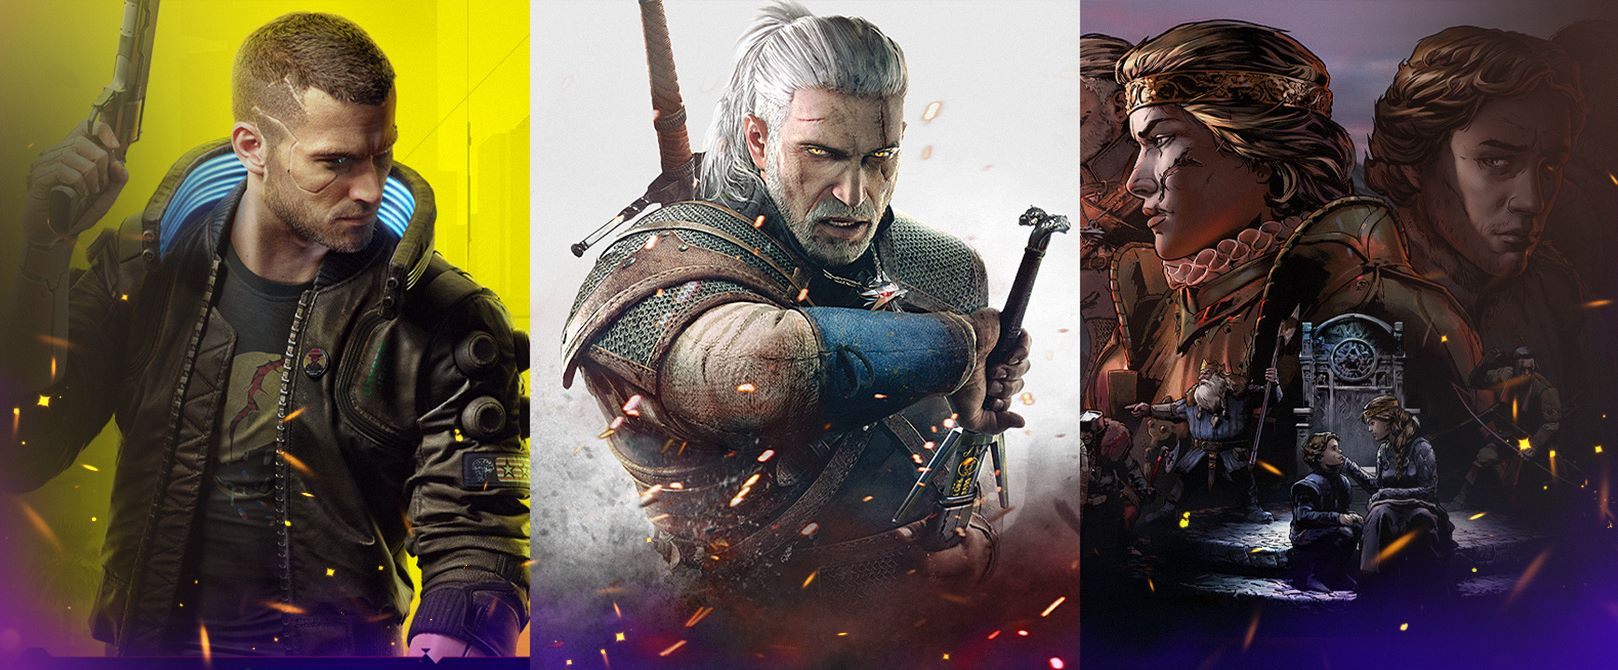 Tutti i giochi di CD Projekt Red, tra cui Cyberpunk 2077 e The Witcher 3, sono ora in un bundle da meno di 90 euro su PC